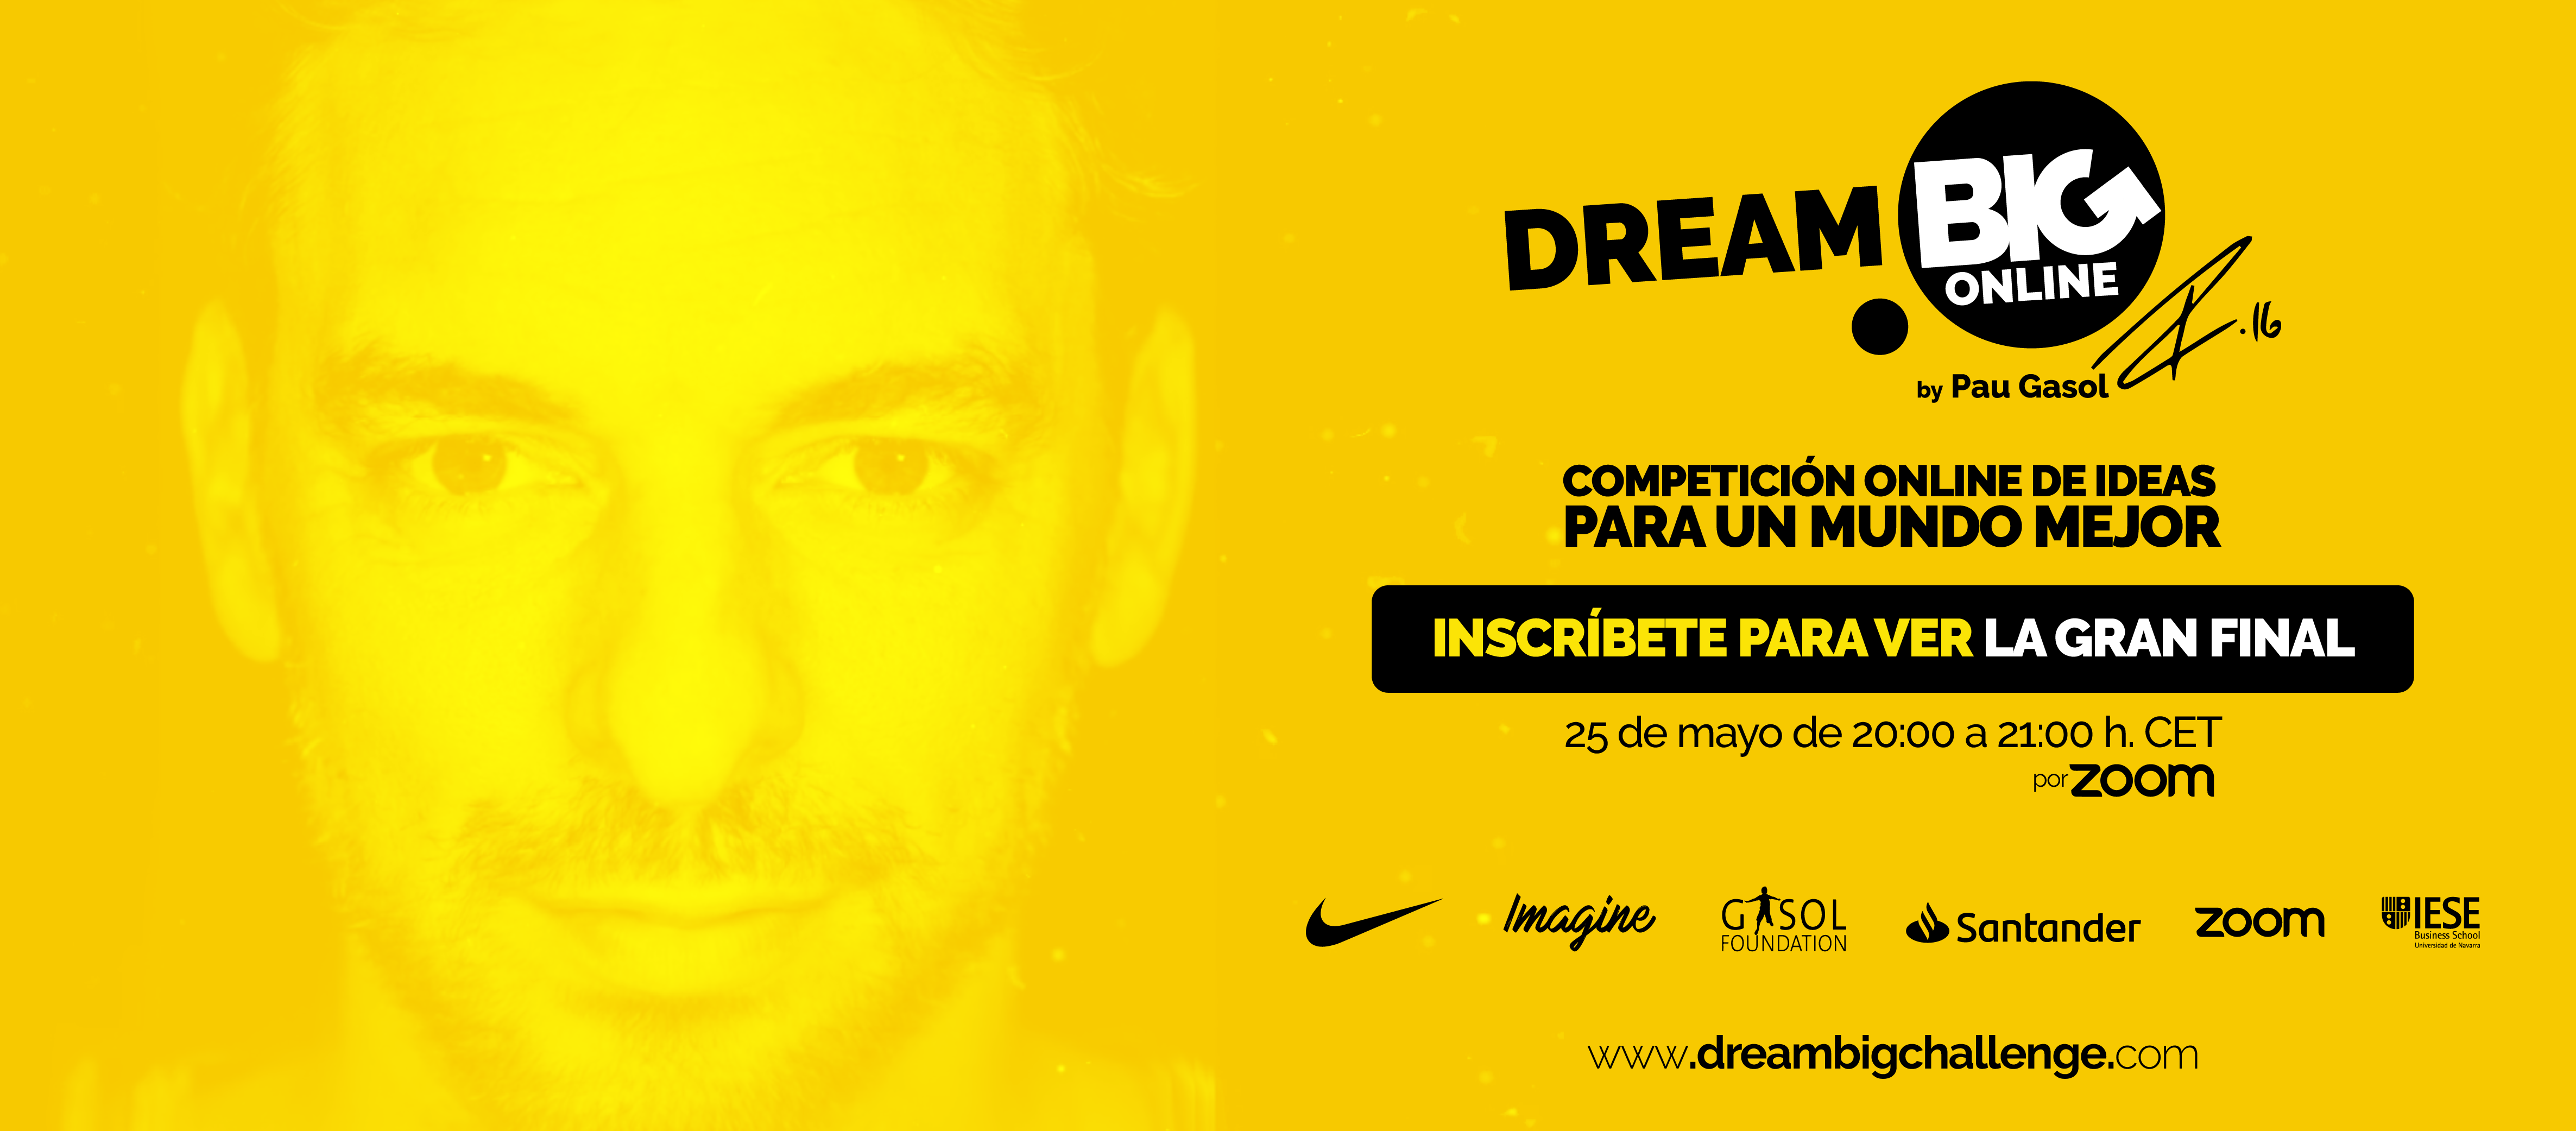 Dream BIG challenge online by Pau Gasol. 21 de Mayo de 2020